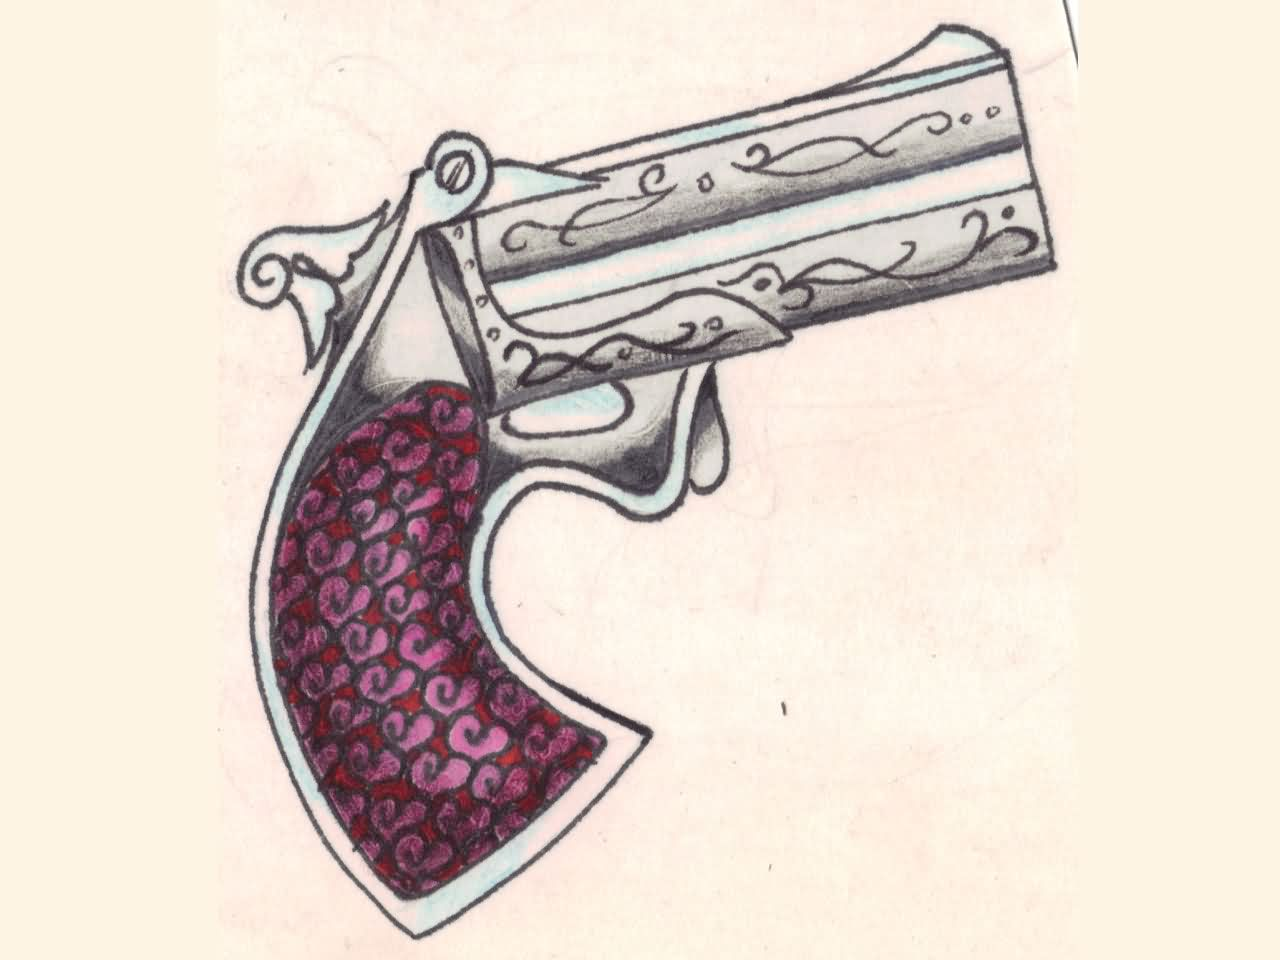 Pistol With Handgrip Of Hearts Tattoo Design